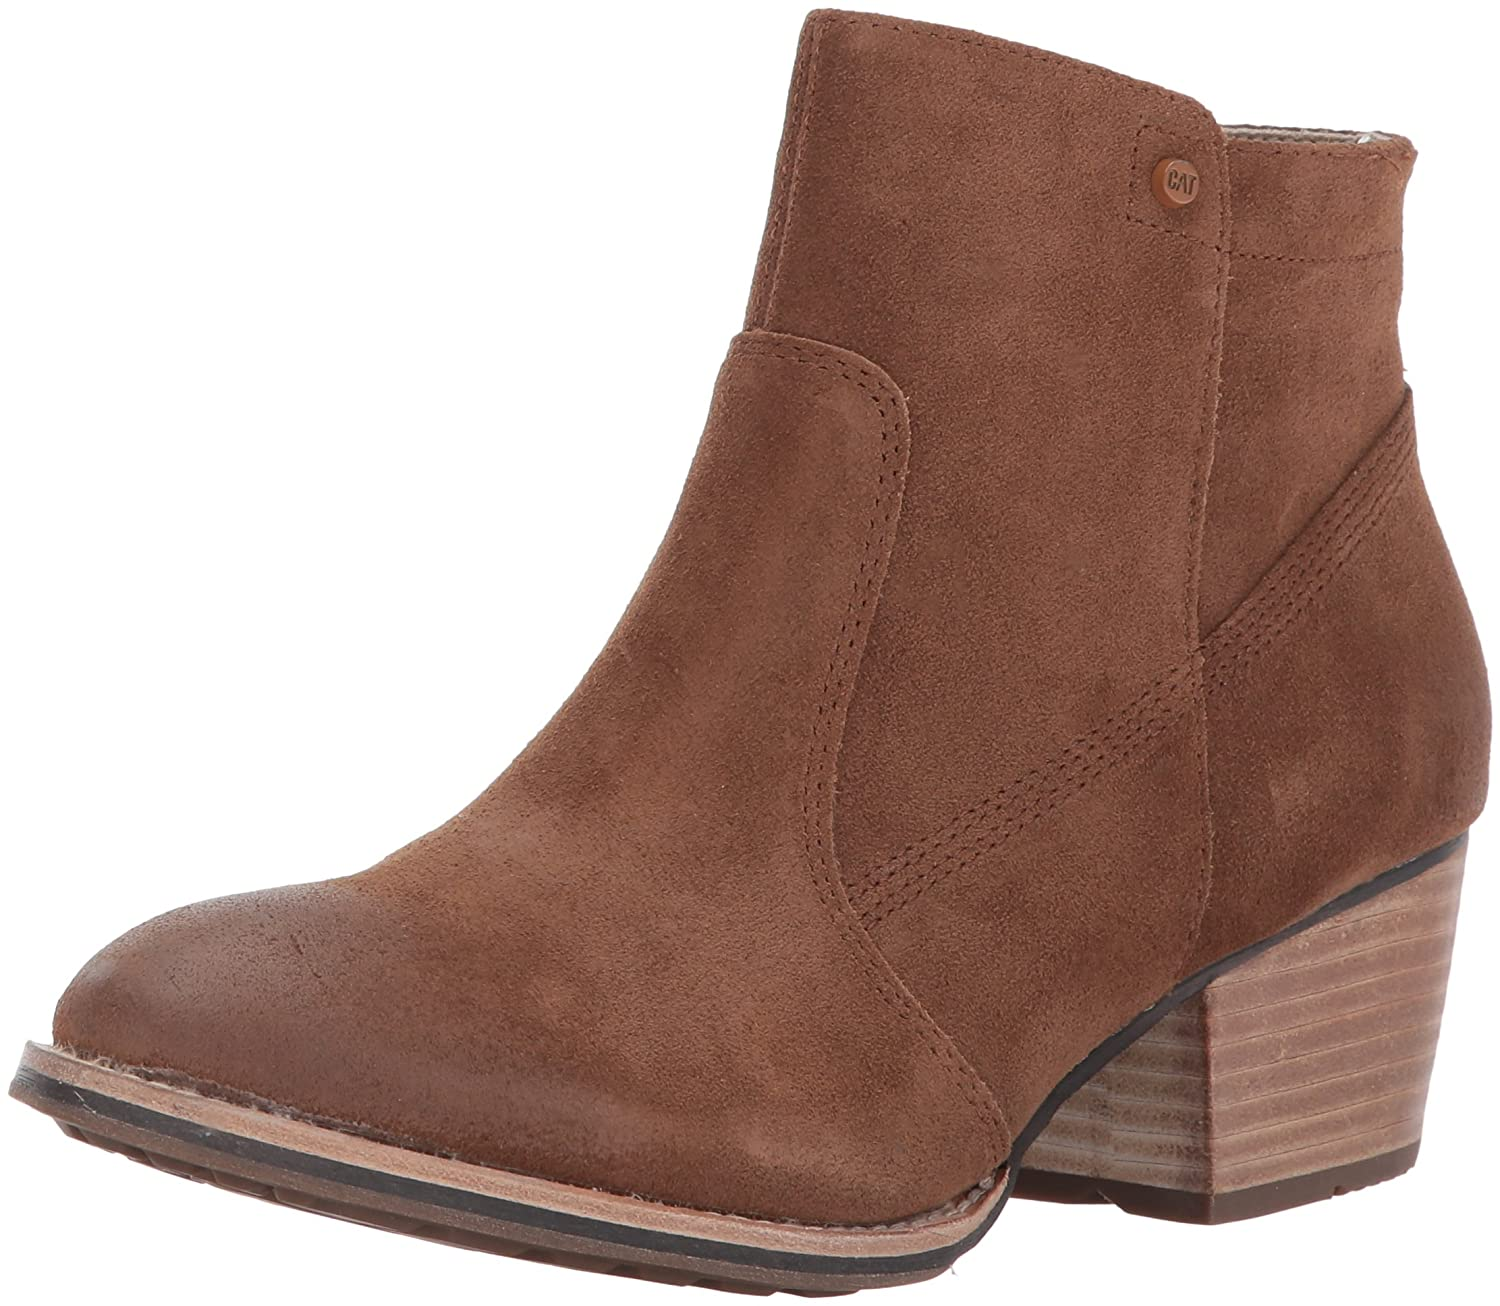 Caterpillar Women's Cider Side Zip Bootie with Stacked Heel Ankle Boot B01N2TO6TF 5 B(M) US|Brown